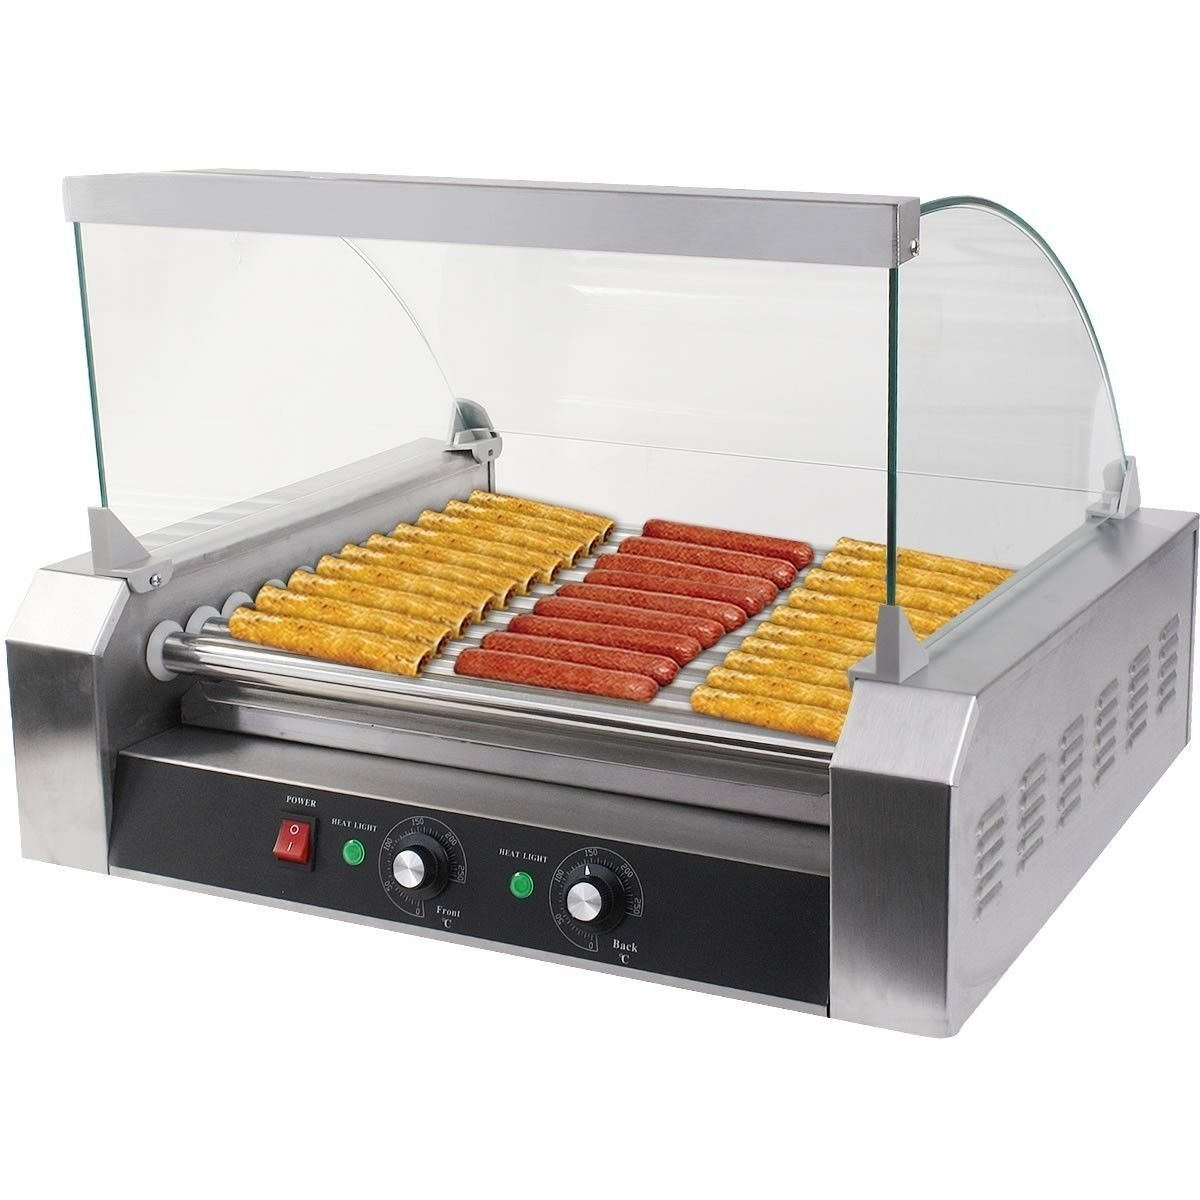 Safstar 11 Roller 30 Hot Dog Grill Machine Commercial Hotdog Cooker Maker Machine with Cover (11 Rollers)